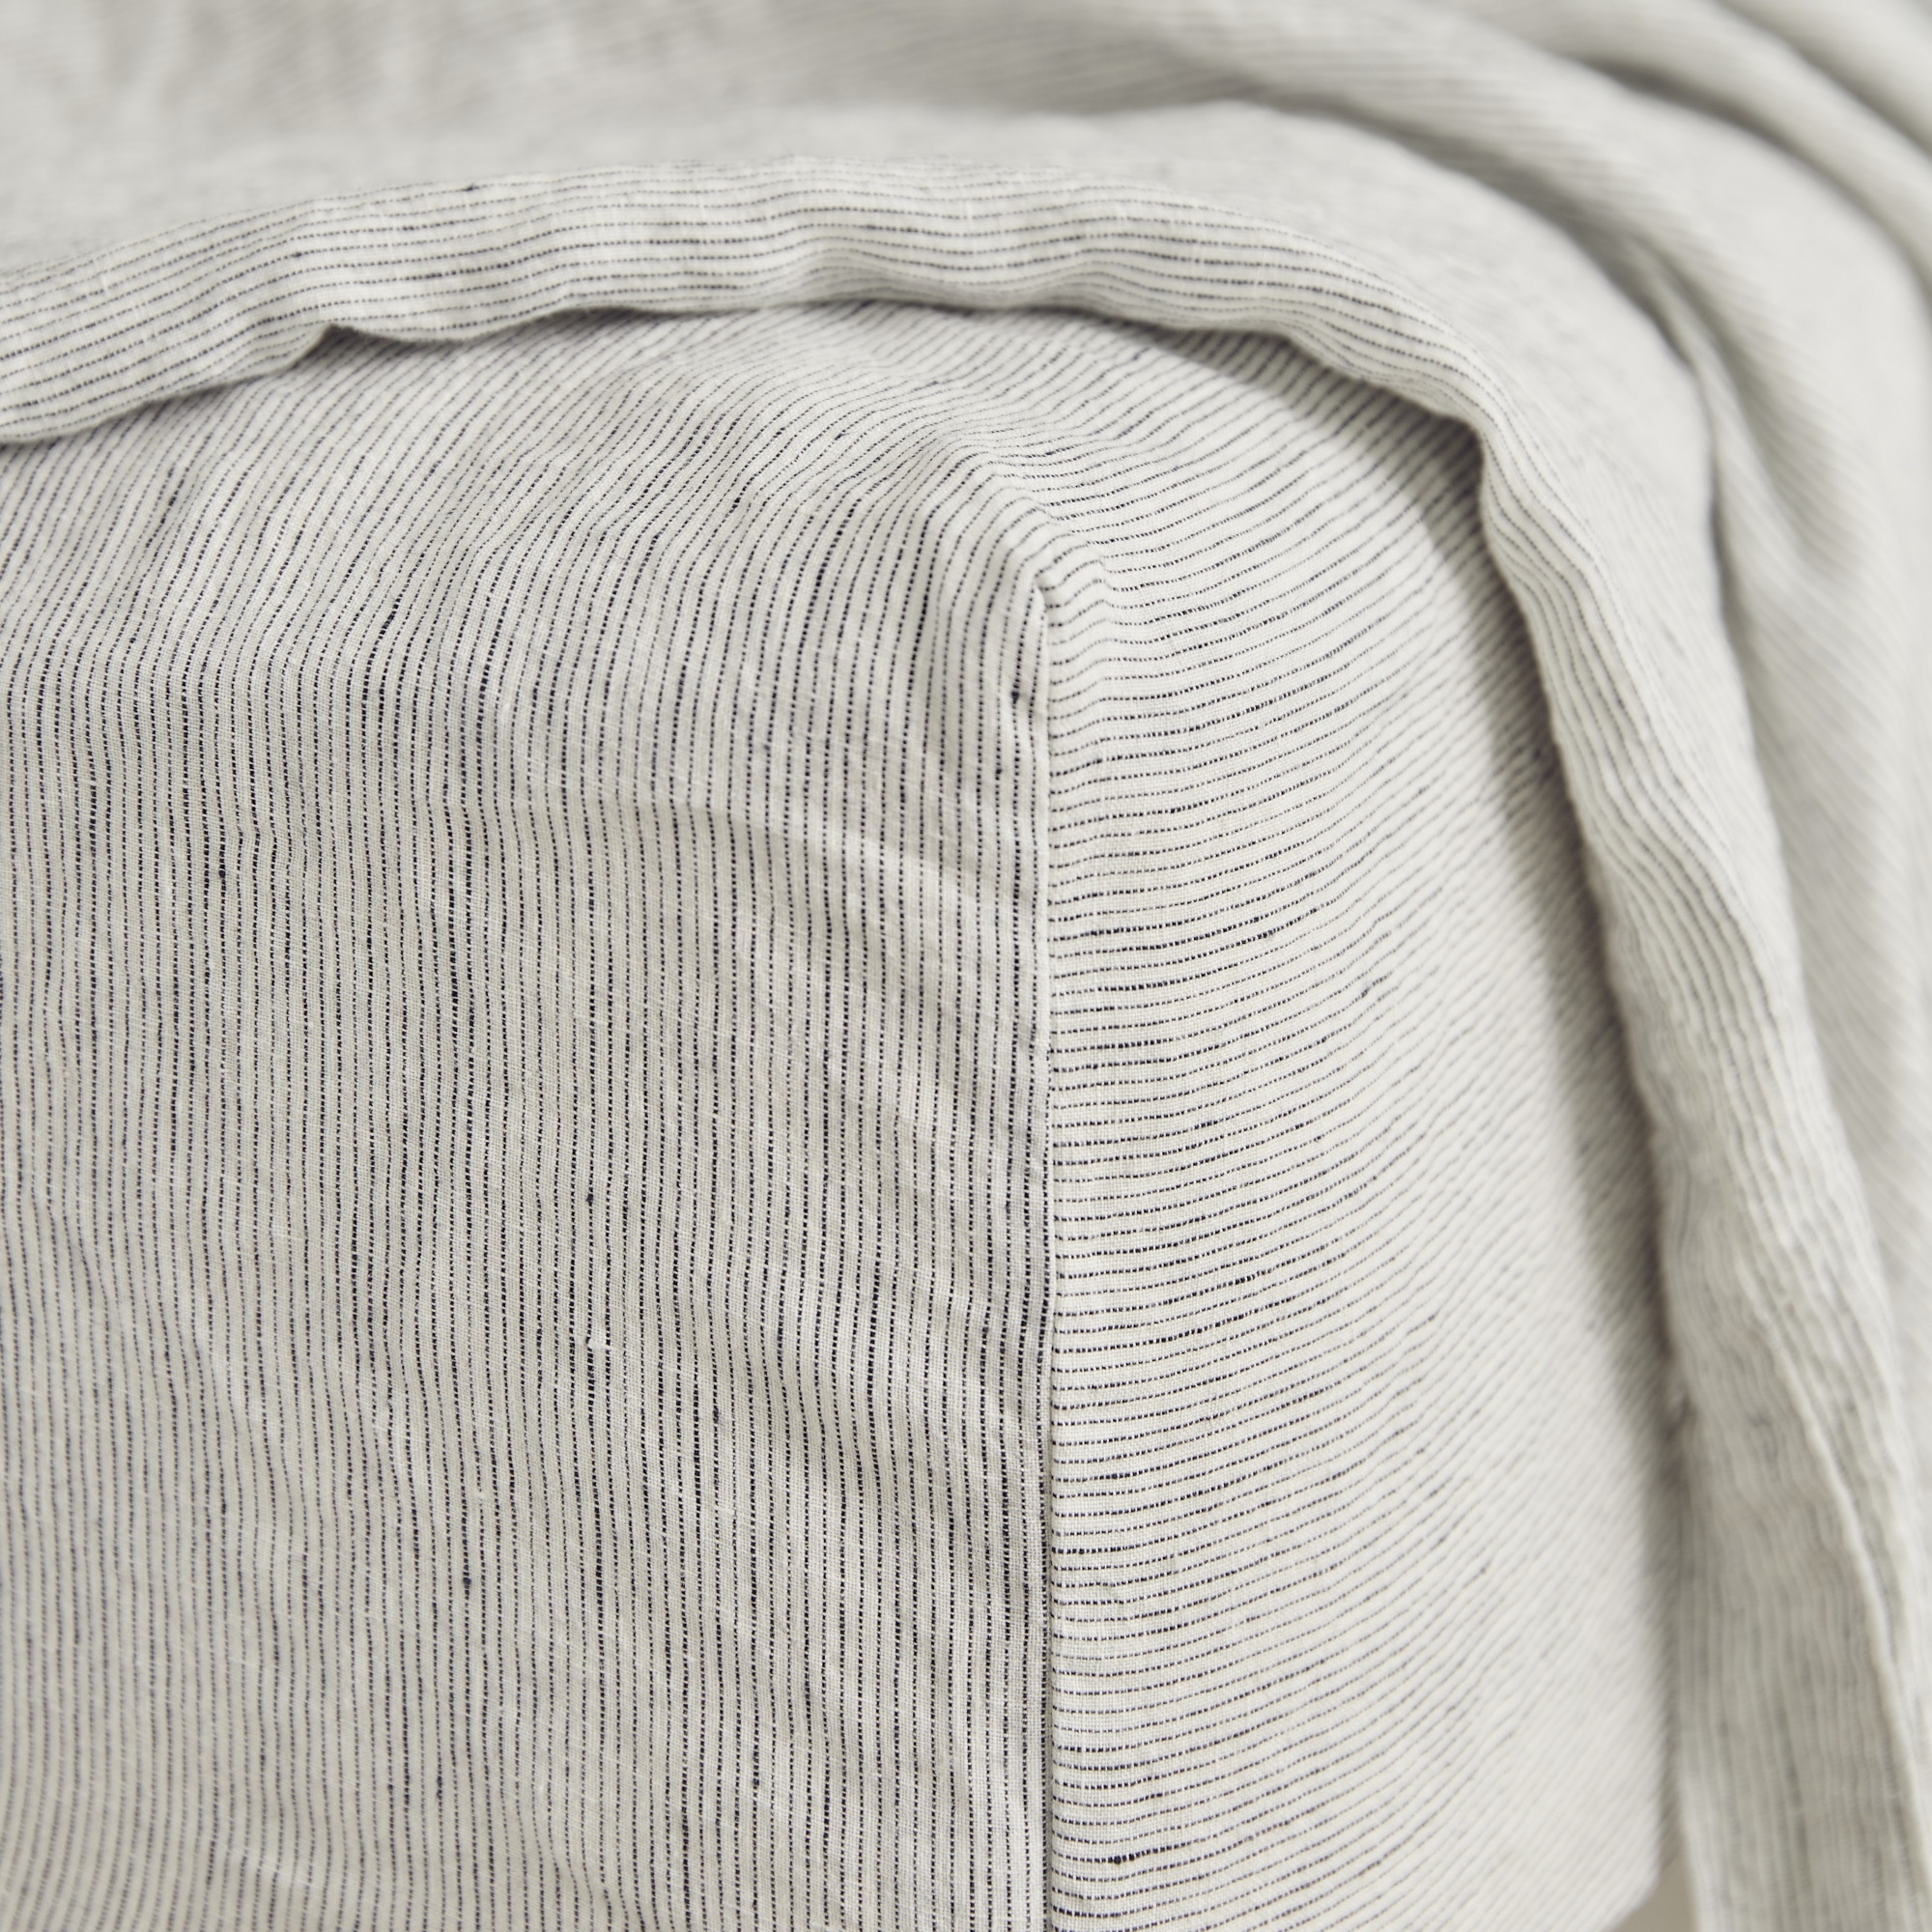 Pinstripe fitted sheet detail from Monsoon Living Newcastle